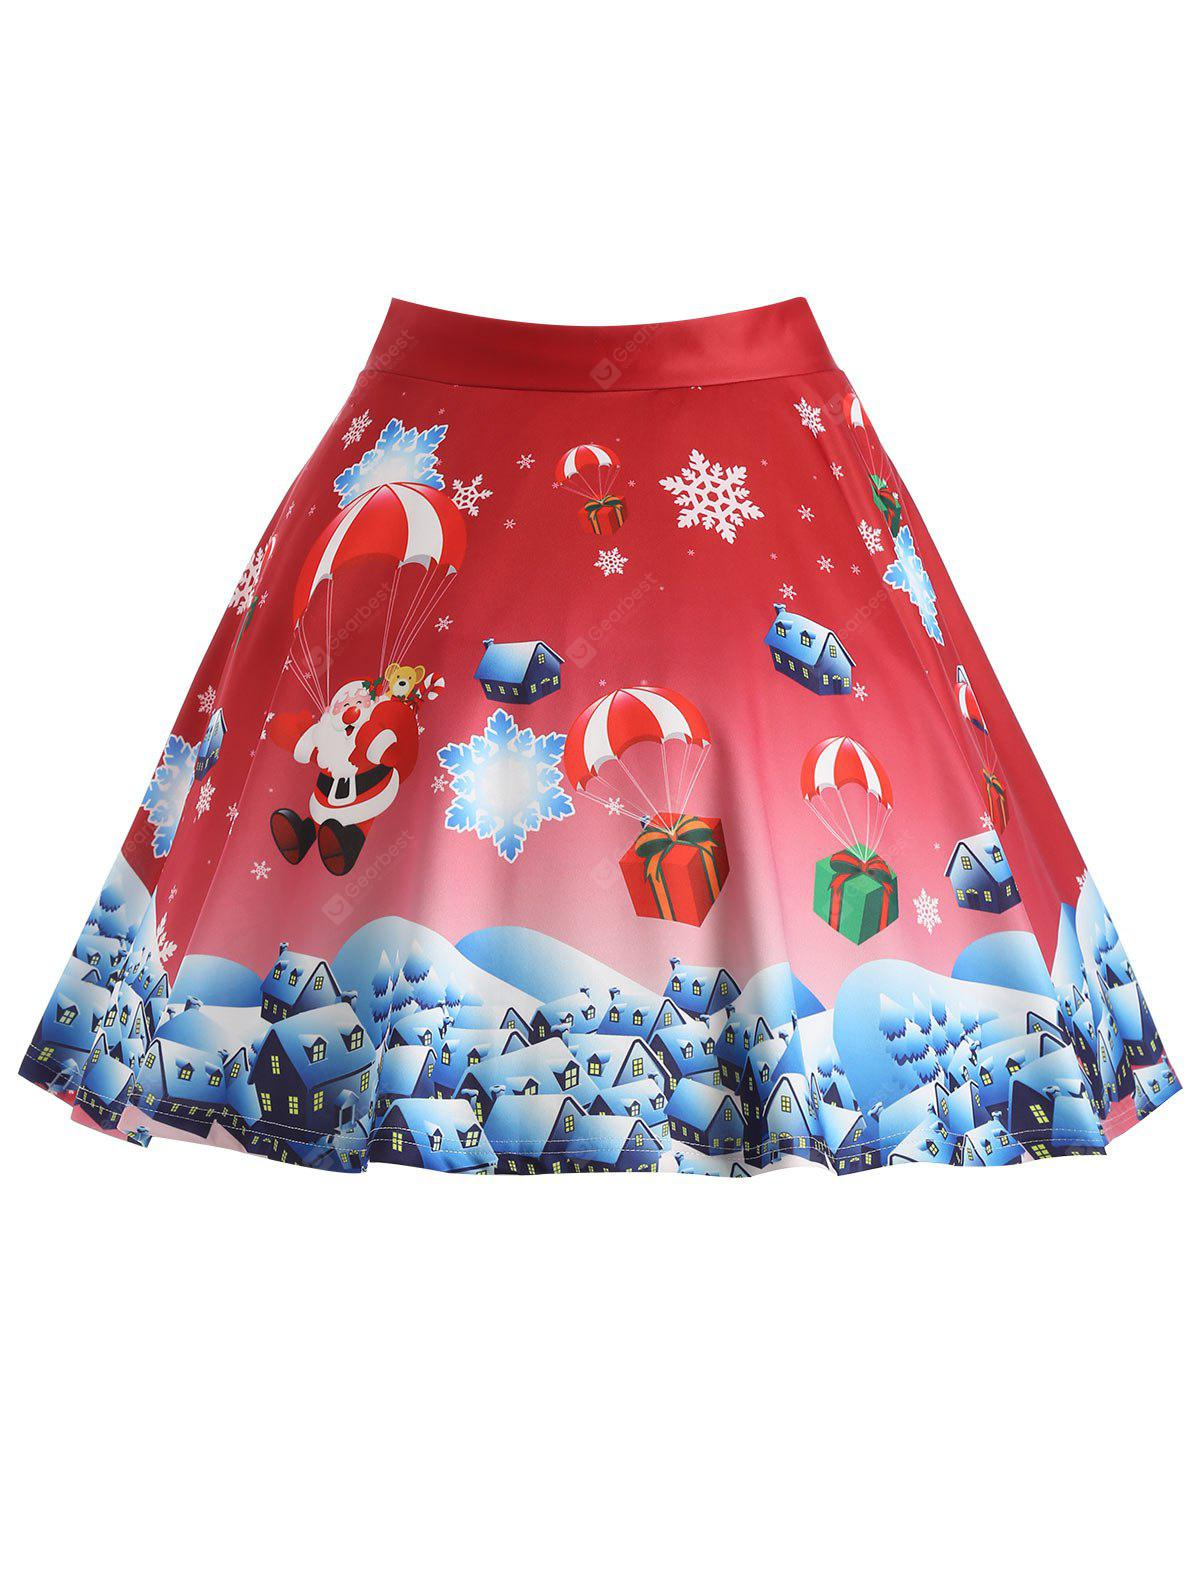 RED 3XL Christmas Gift Santa Claus Print Plus Size Skirt